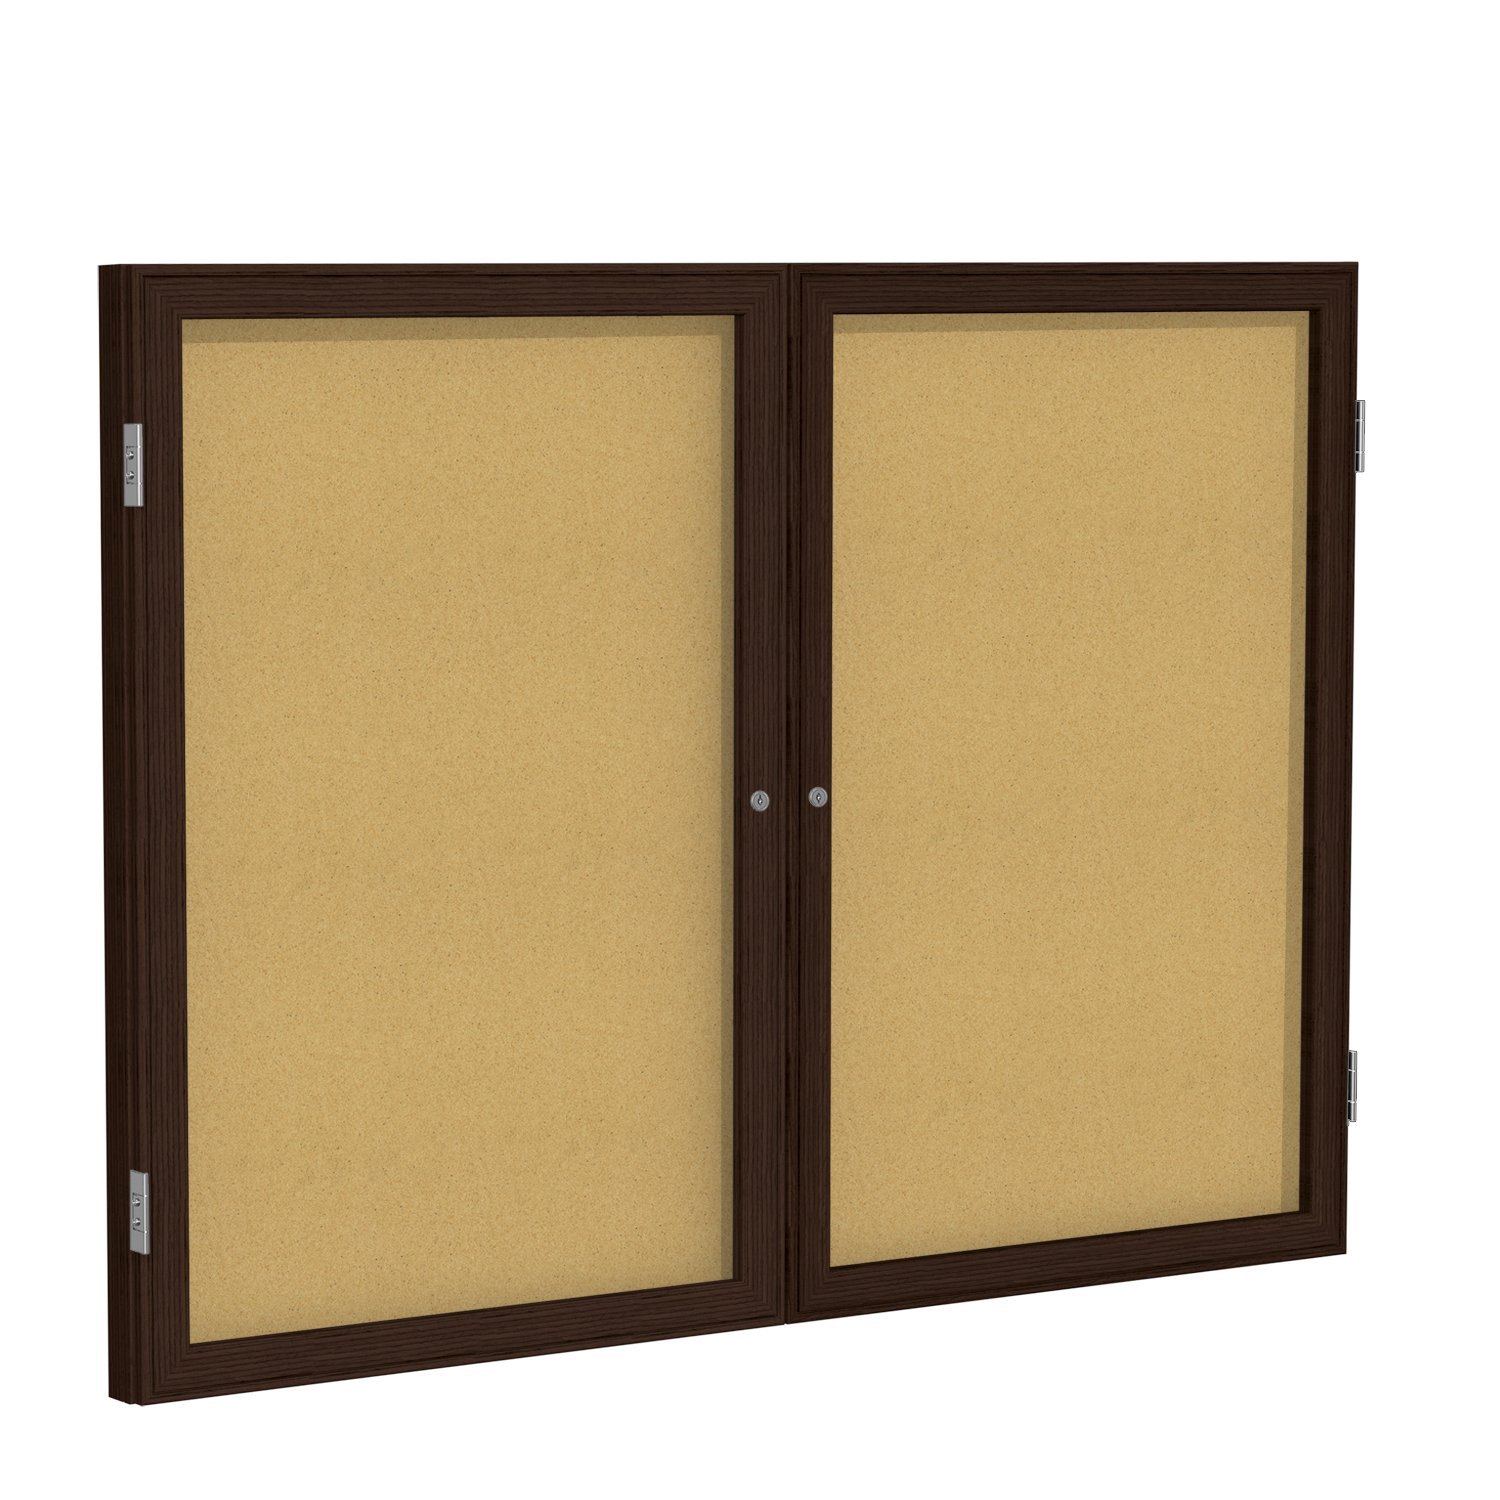 Case of 5, 36''x48'' 2-Dr Wood Frame Walnut Finish Enclosed Bulletin Board - Natural Cork